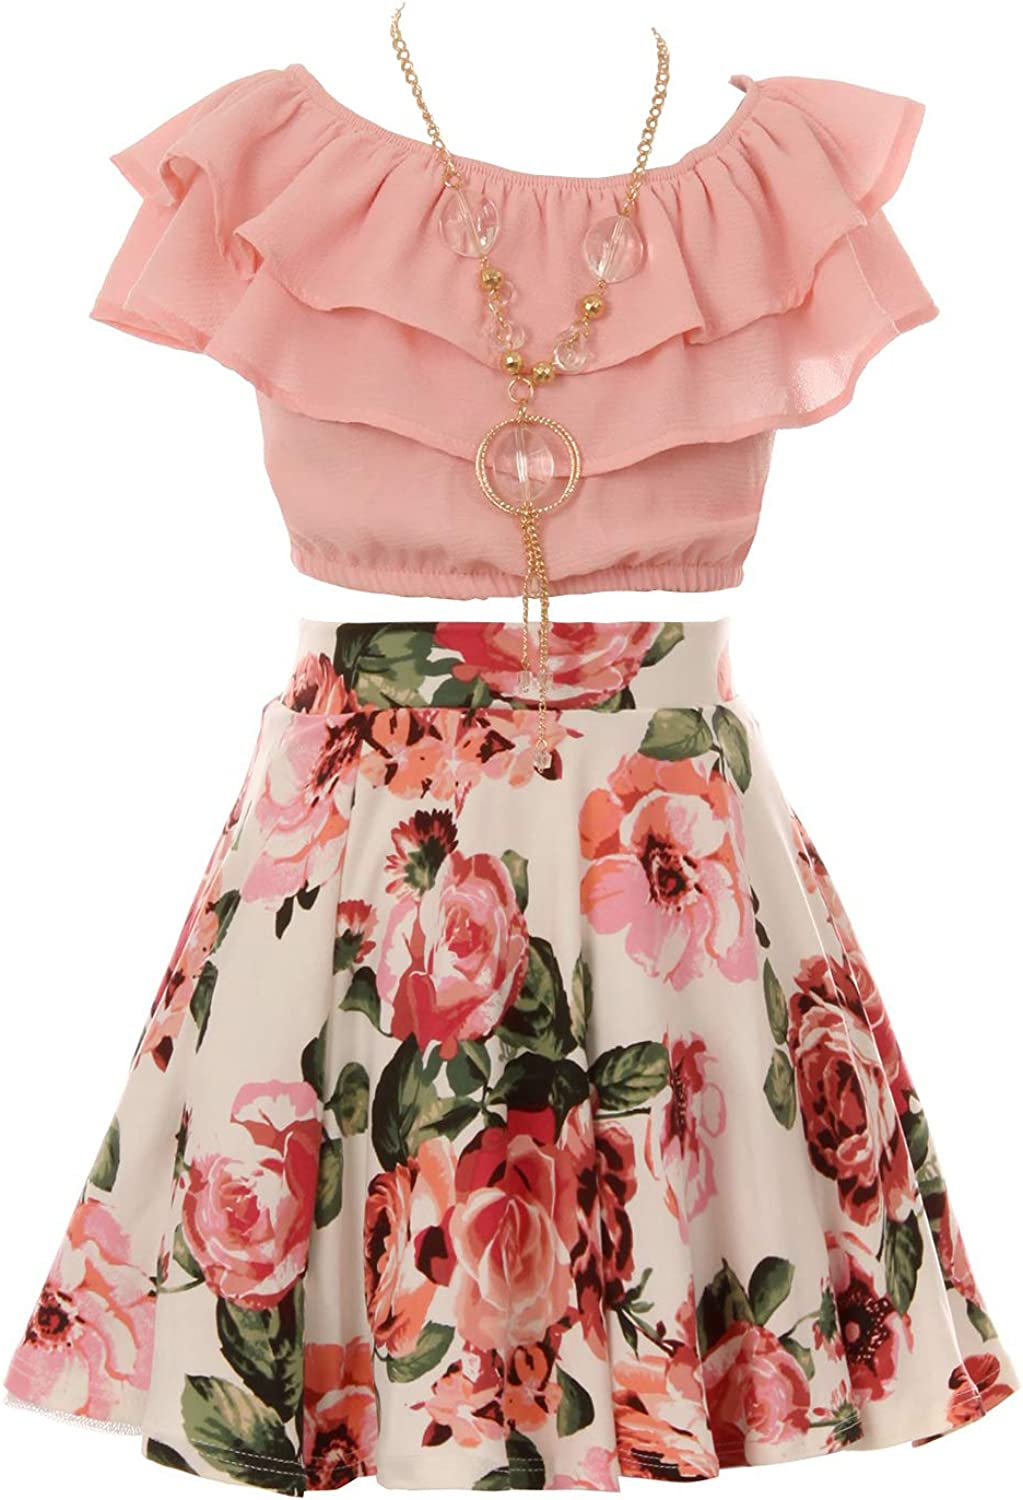 iGirlDress Girls Sale SALE% OFF Sale special price Off Shoulder Crop Layered and Ruffle Top Skirt